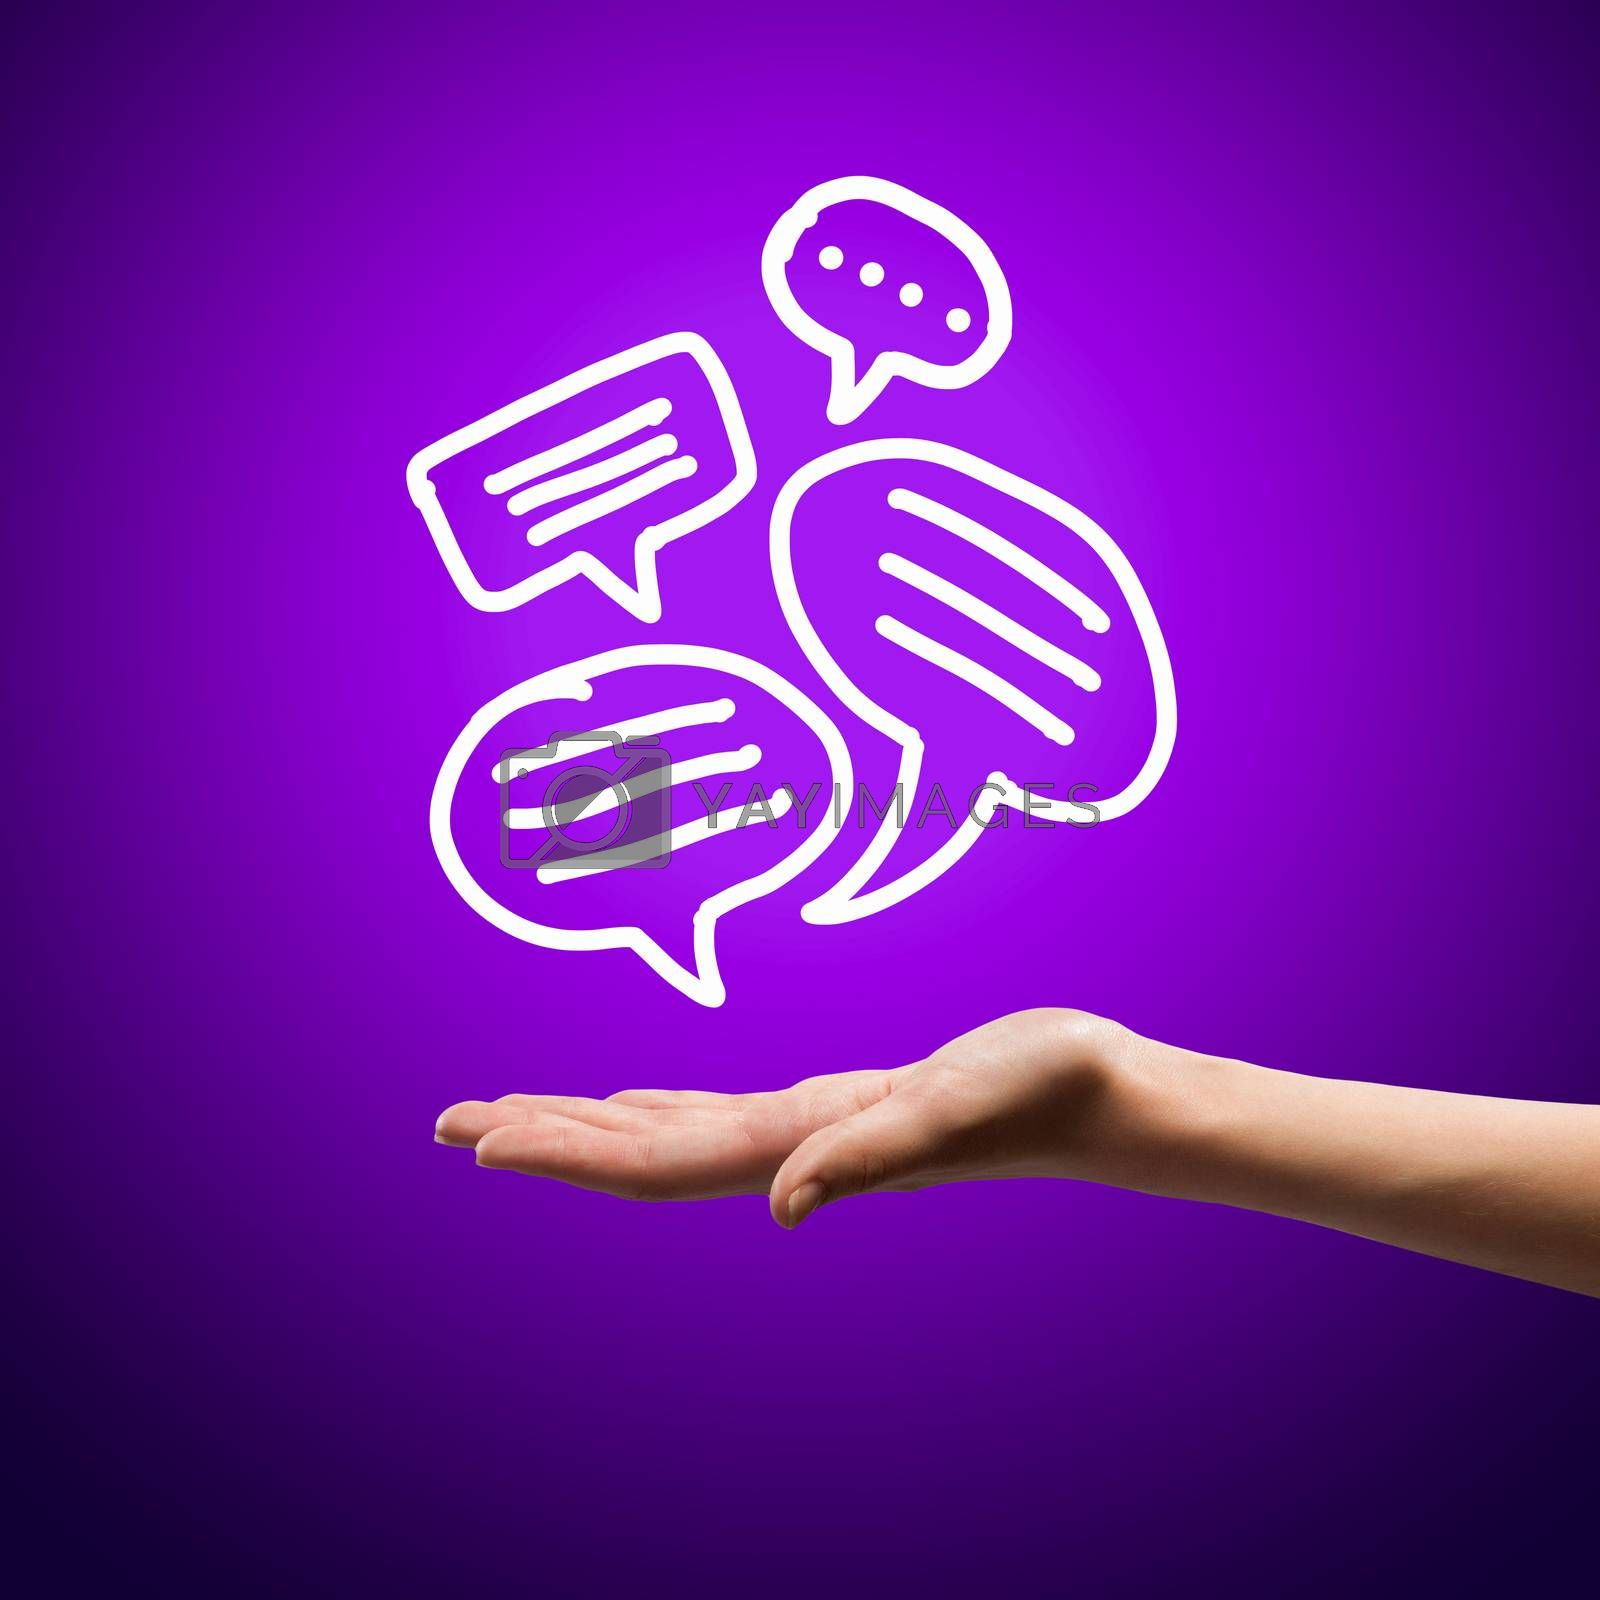 Close up image of human hand holding speech bubbles